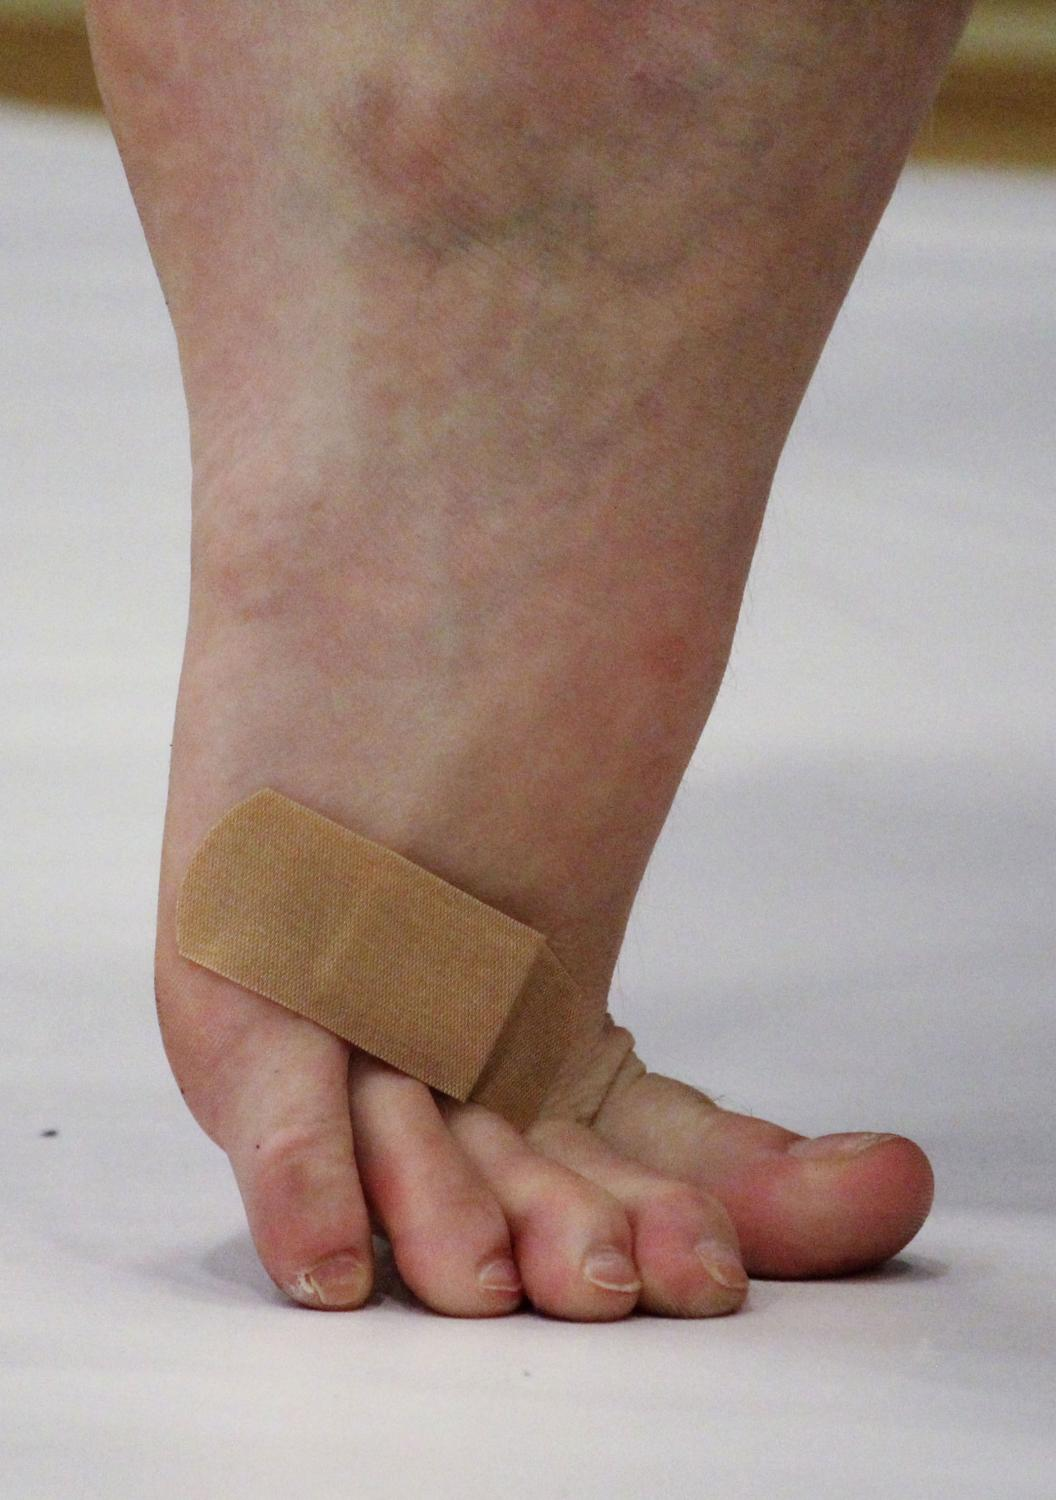 """Stephens College freshman Lauren Buzzell returns to tendu, a ballet position, after applying a bandage November 3, 2019, at Battle High School in Columbia, Missouri. Buzzell had been tossing a flag, which landed on her foot, breaking the skin. She quickly ran off to apply a bandage before returning to the floor to continue the practice without disturbing anyone. Part of being a team in the guard is rushing through mending injuries so that there is no chance of desynchronization. """"We all have to be together"""" is a motto both the coaches and the teammates call out during practice."""